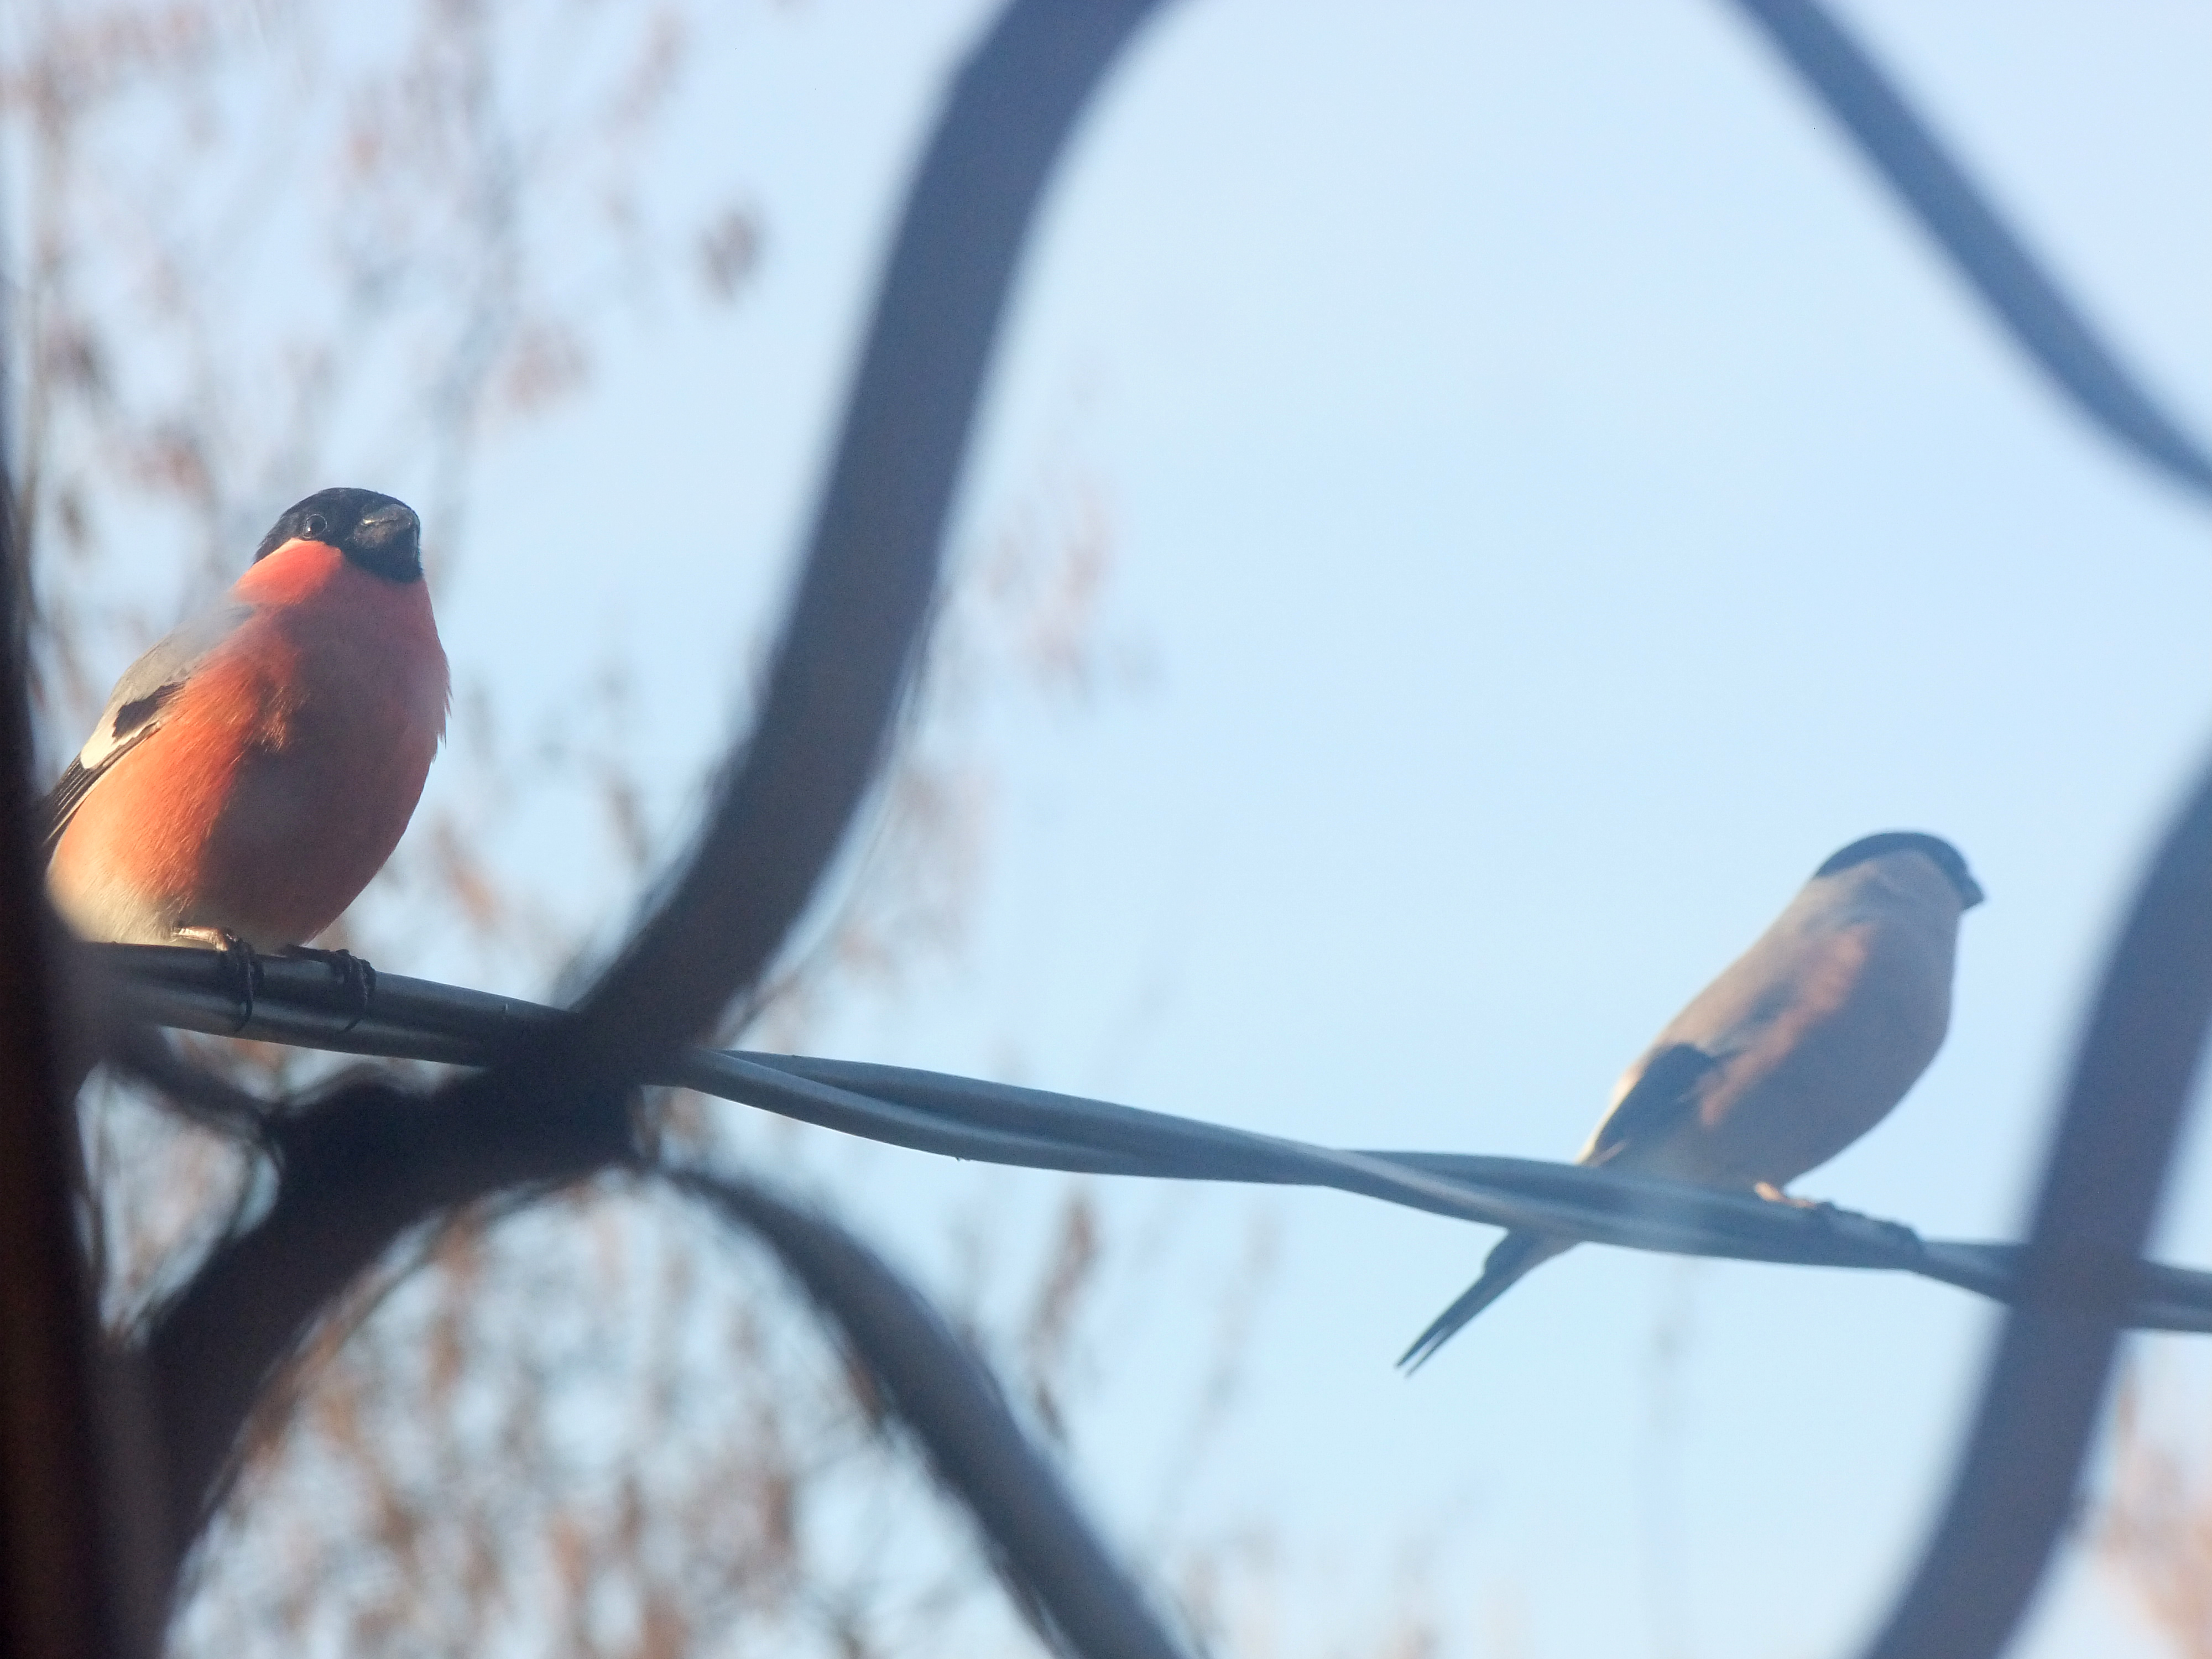 A pair of Bullfinches